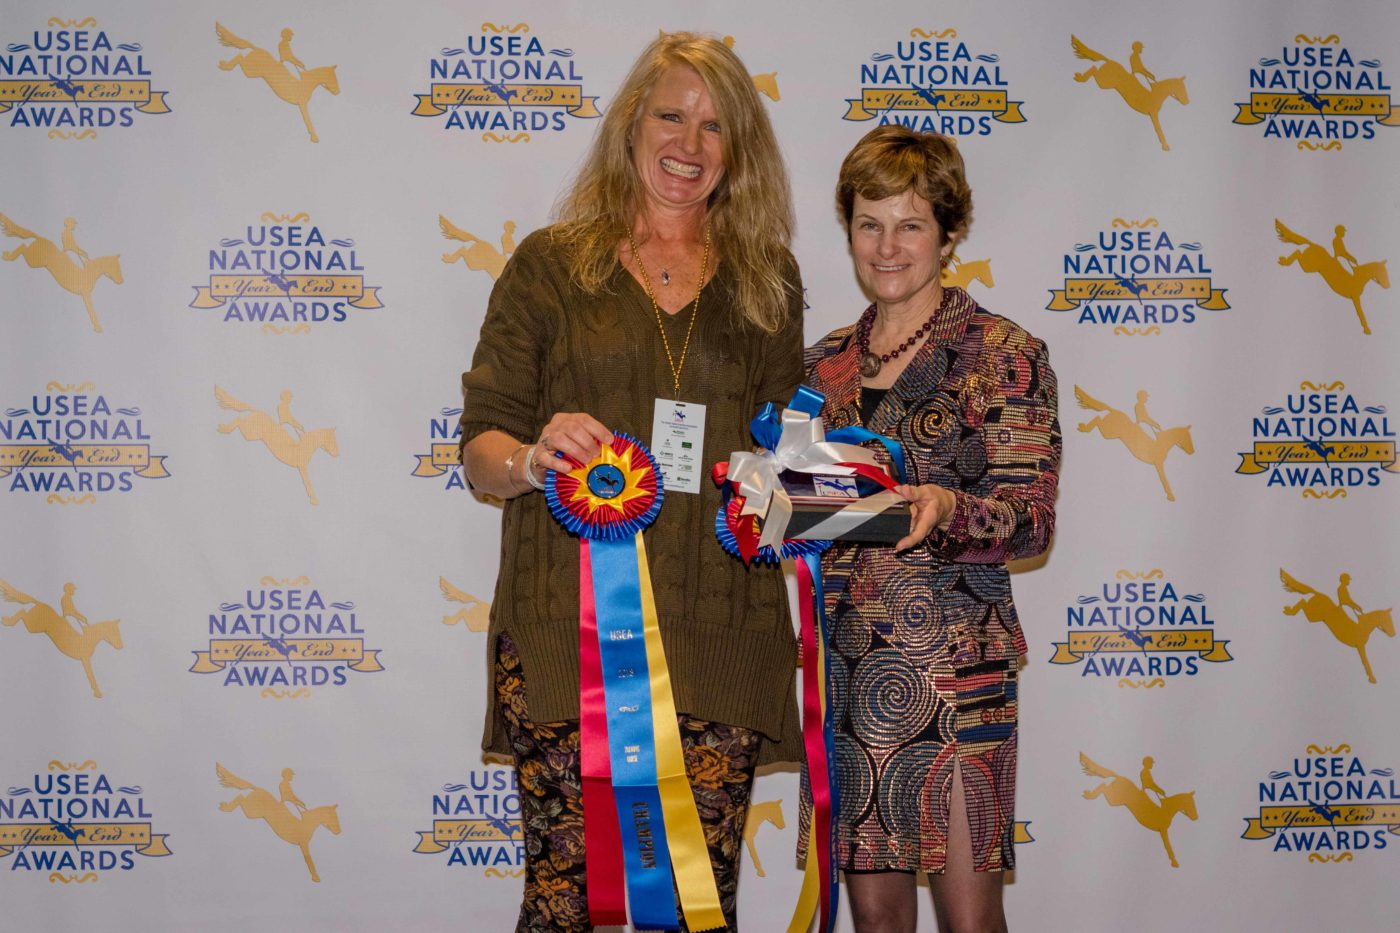 Training Master Rider, Training Master Amateur Rider and owner and rider of Training Horse of the Year, Cindy Phillips.